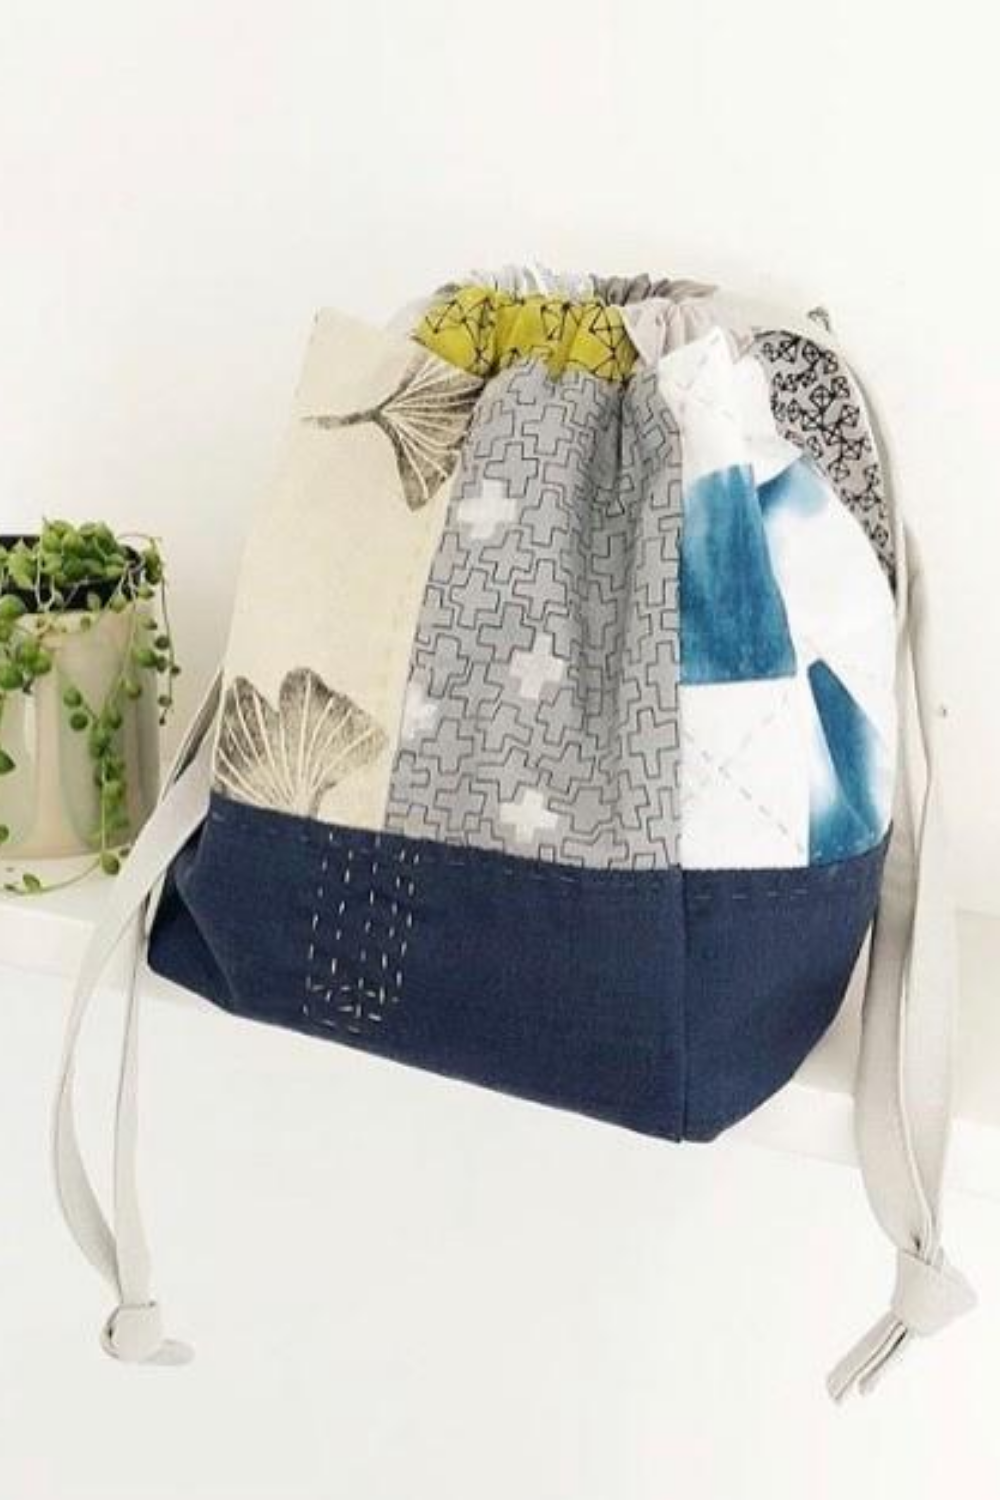 Japanese Rice Pouch made by Karen Lewis | What's in Your Sewing Bag Karen Lewis Textiles? | Shannon Fraser Designs #japanesericepouch